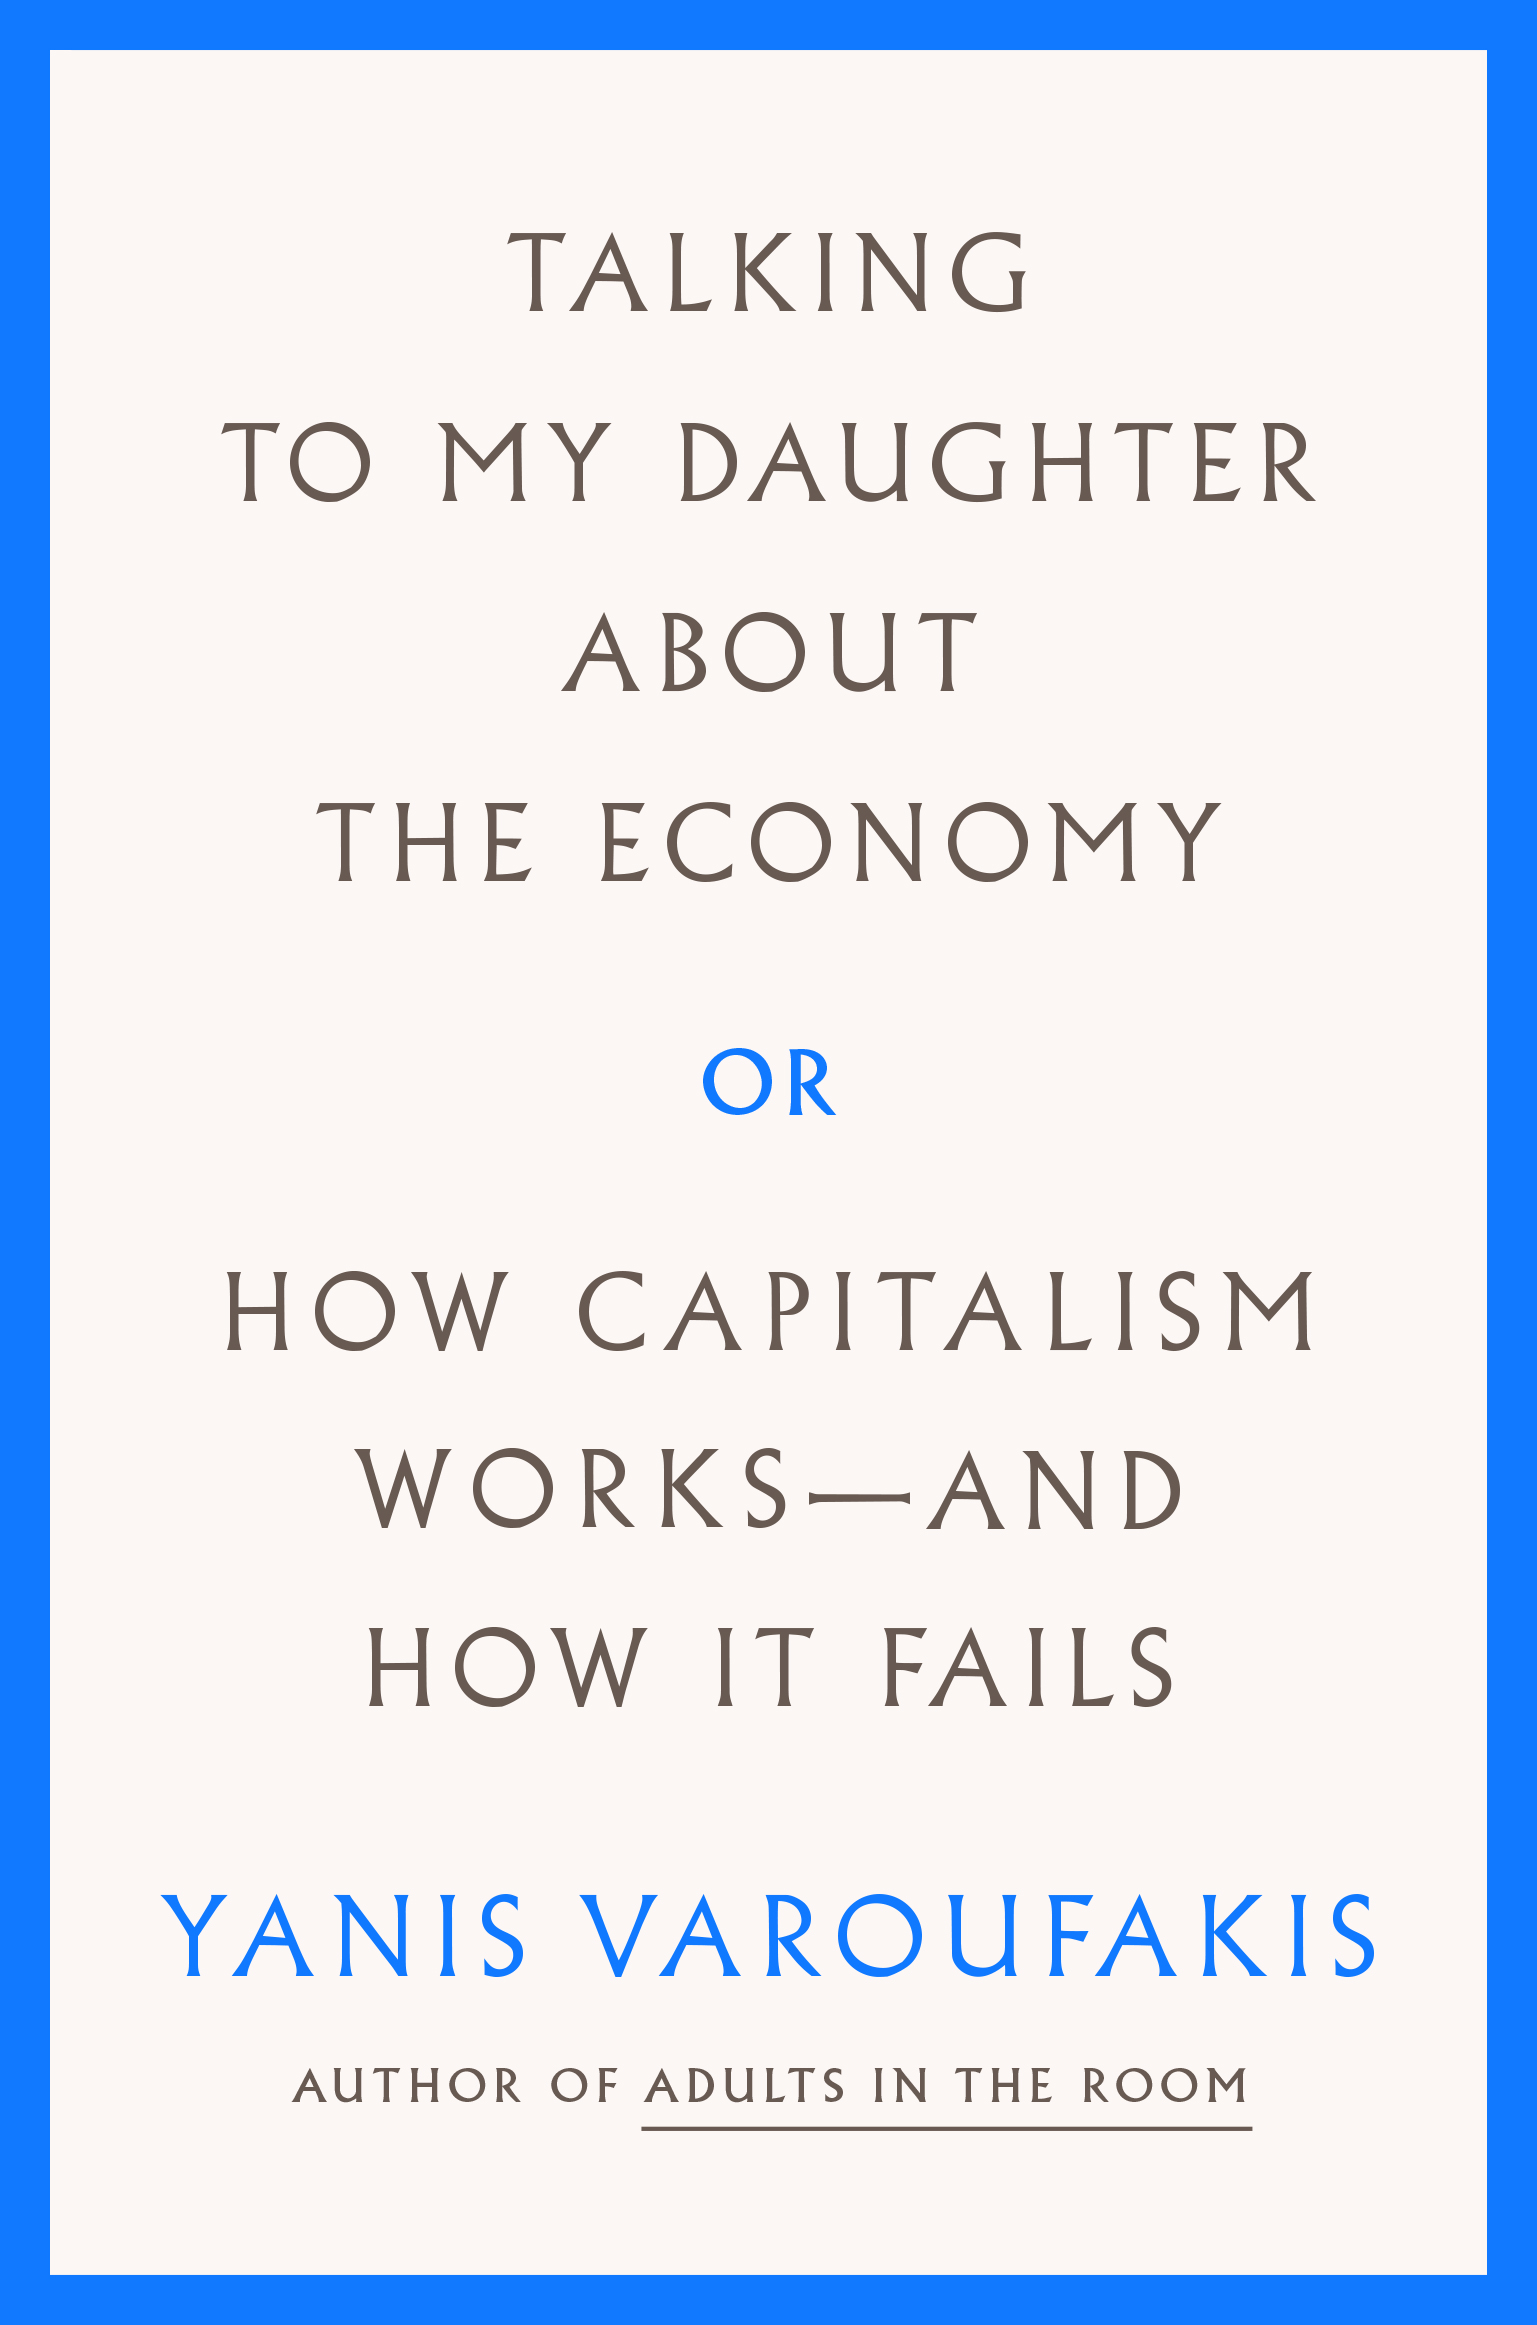 Talking to My Daughter About the Economy .JPG